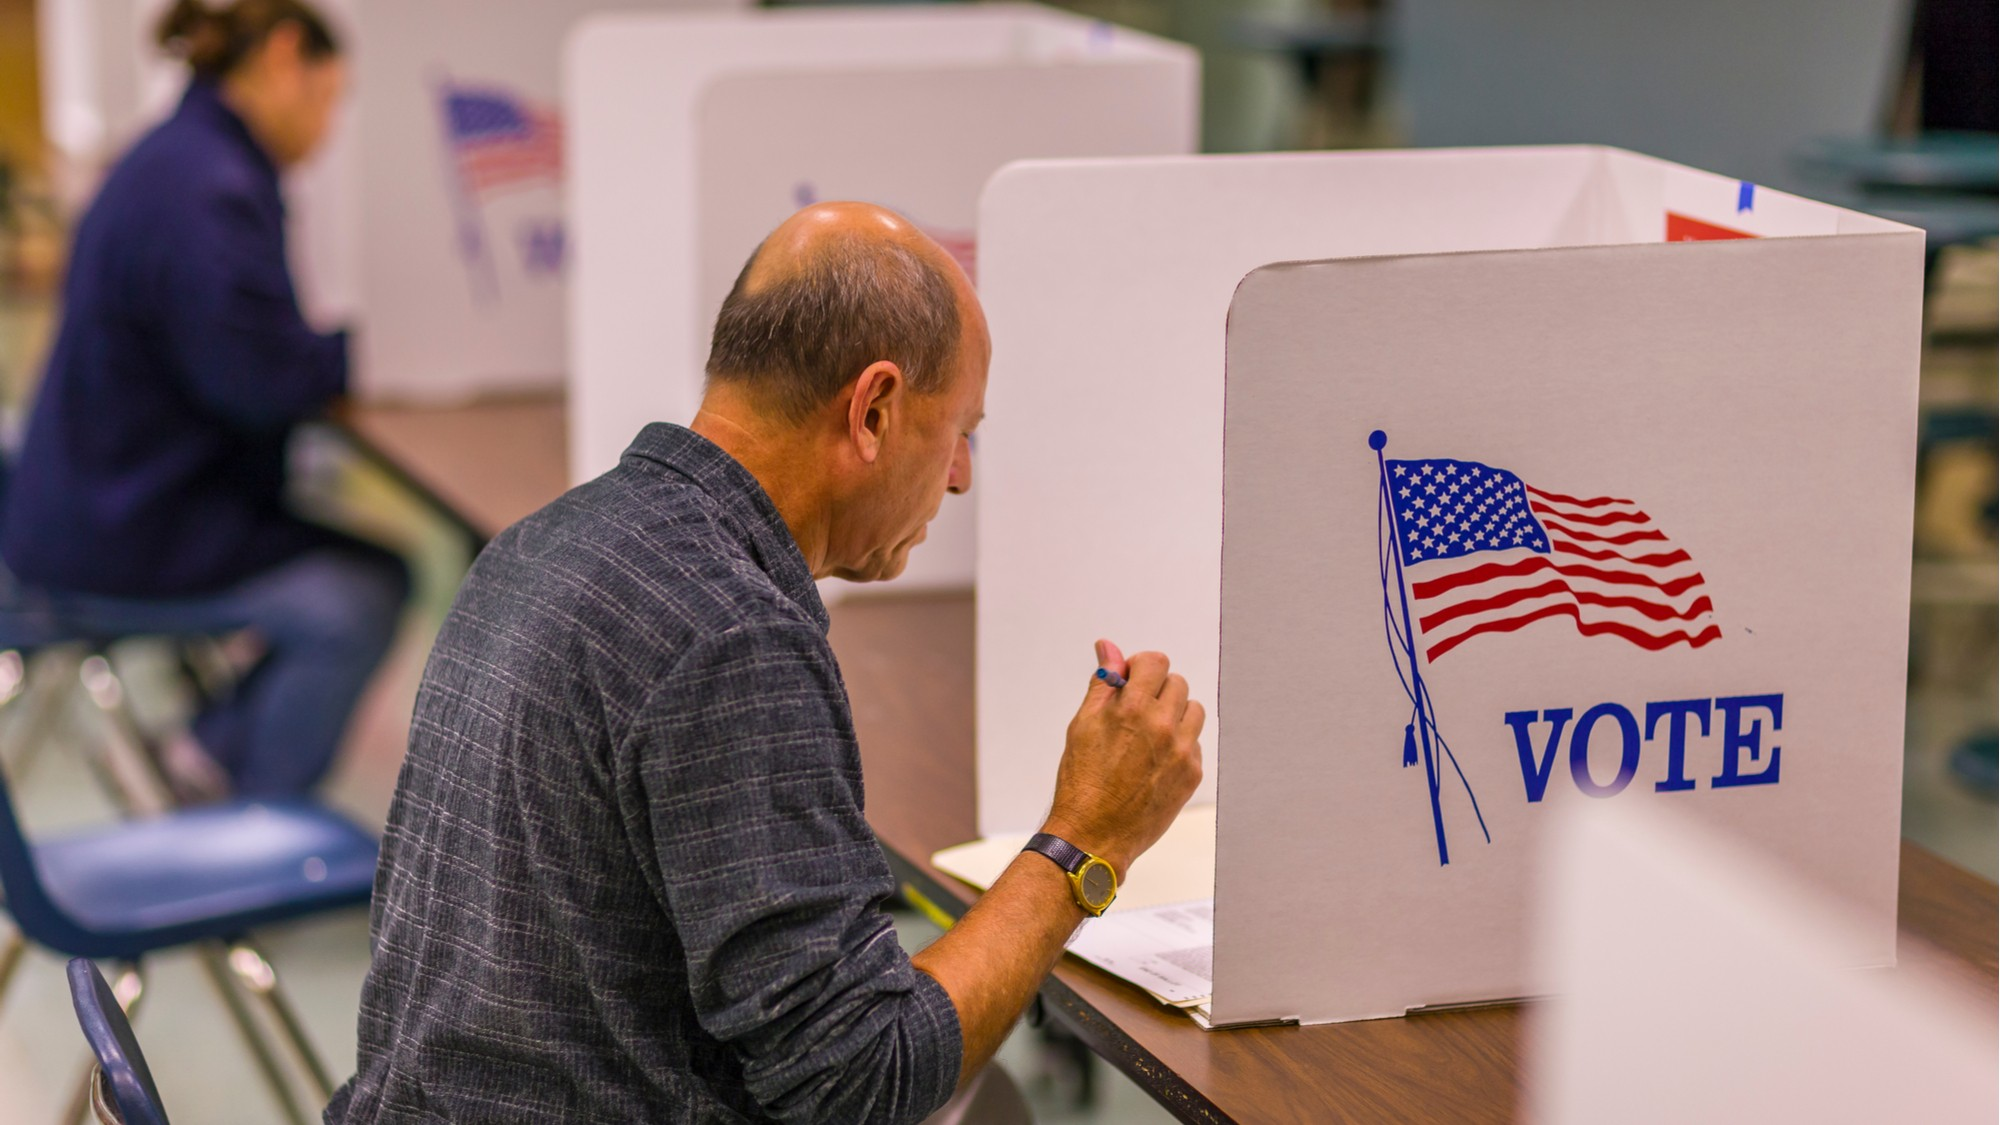 DARPA Is Building a $10 Million, Open Source, Secure Voting System